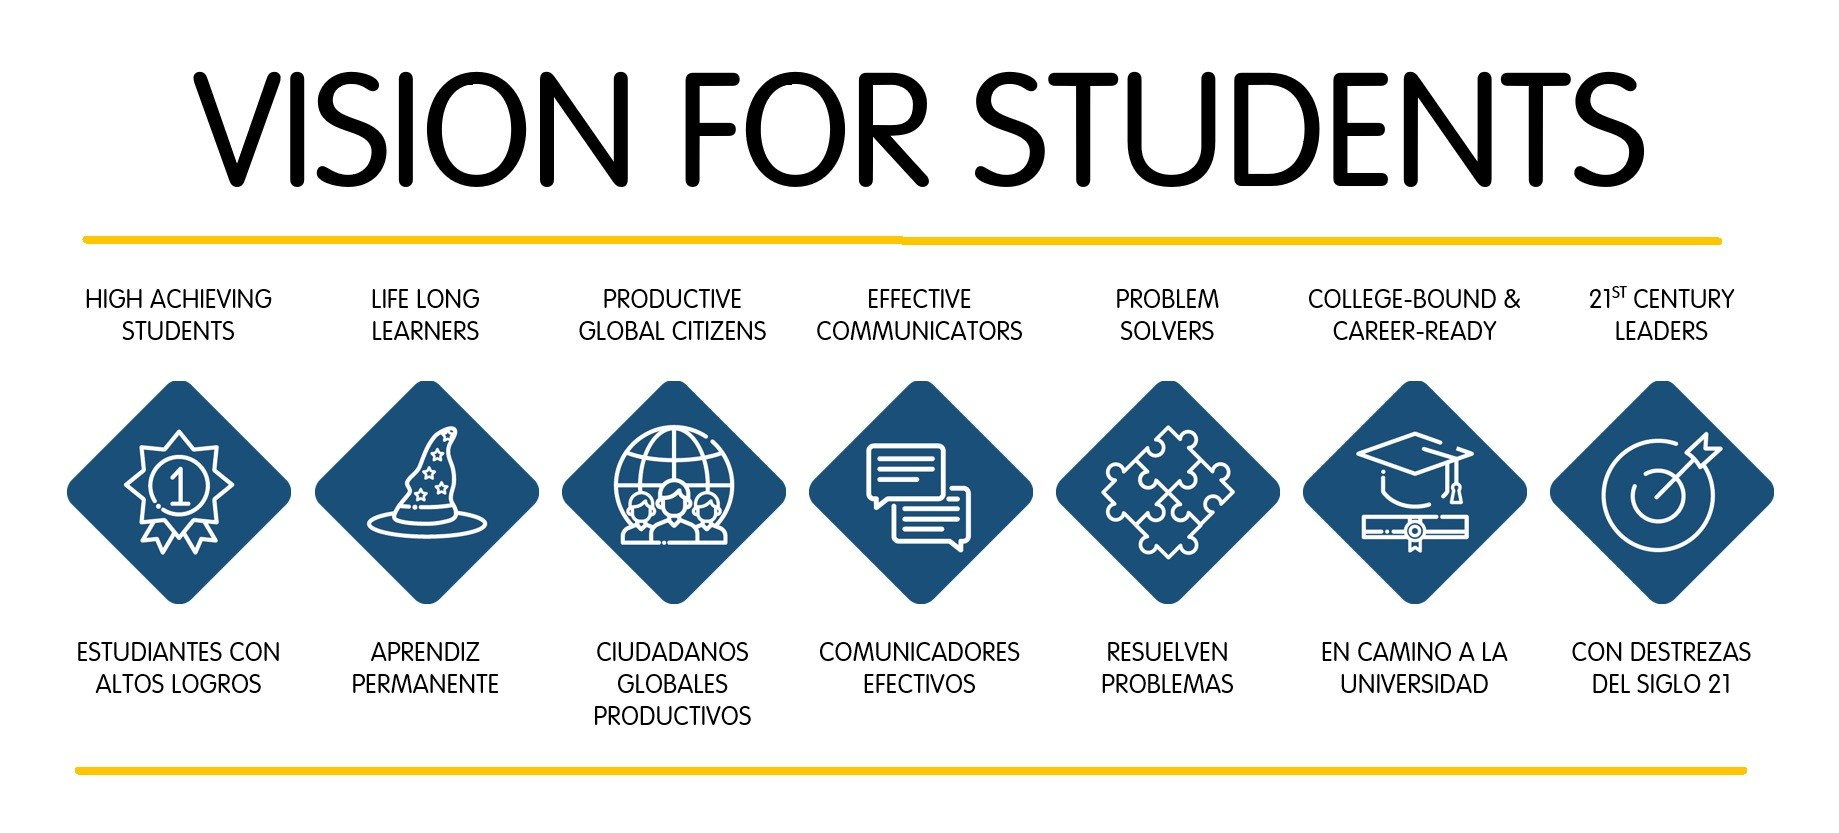 Vision for Students